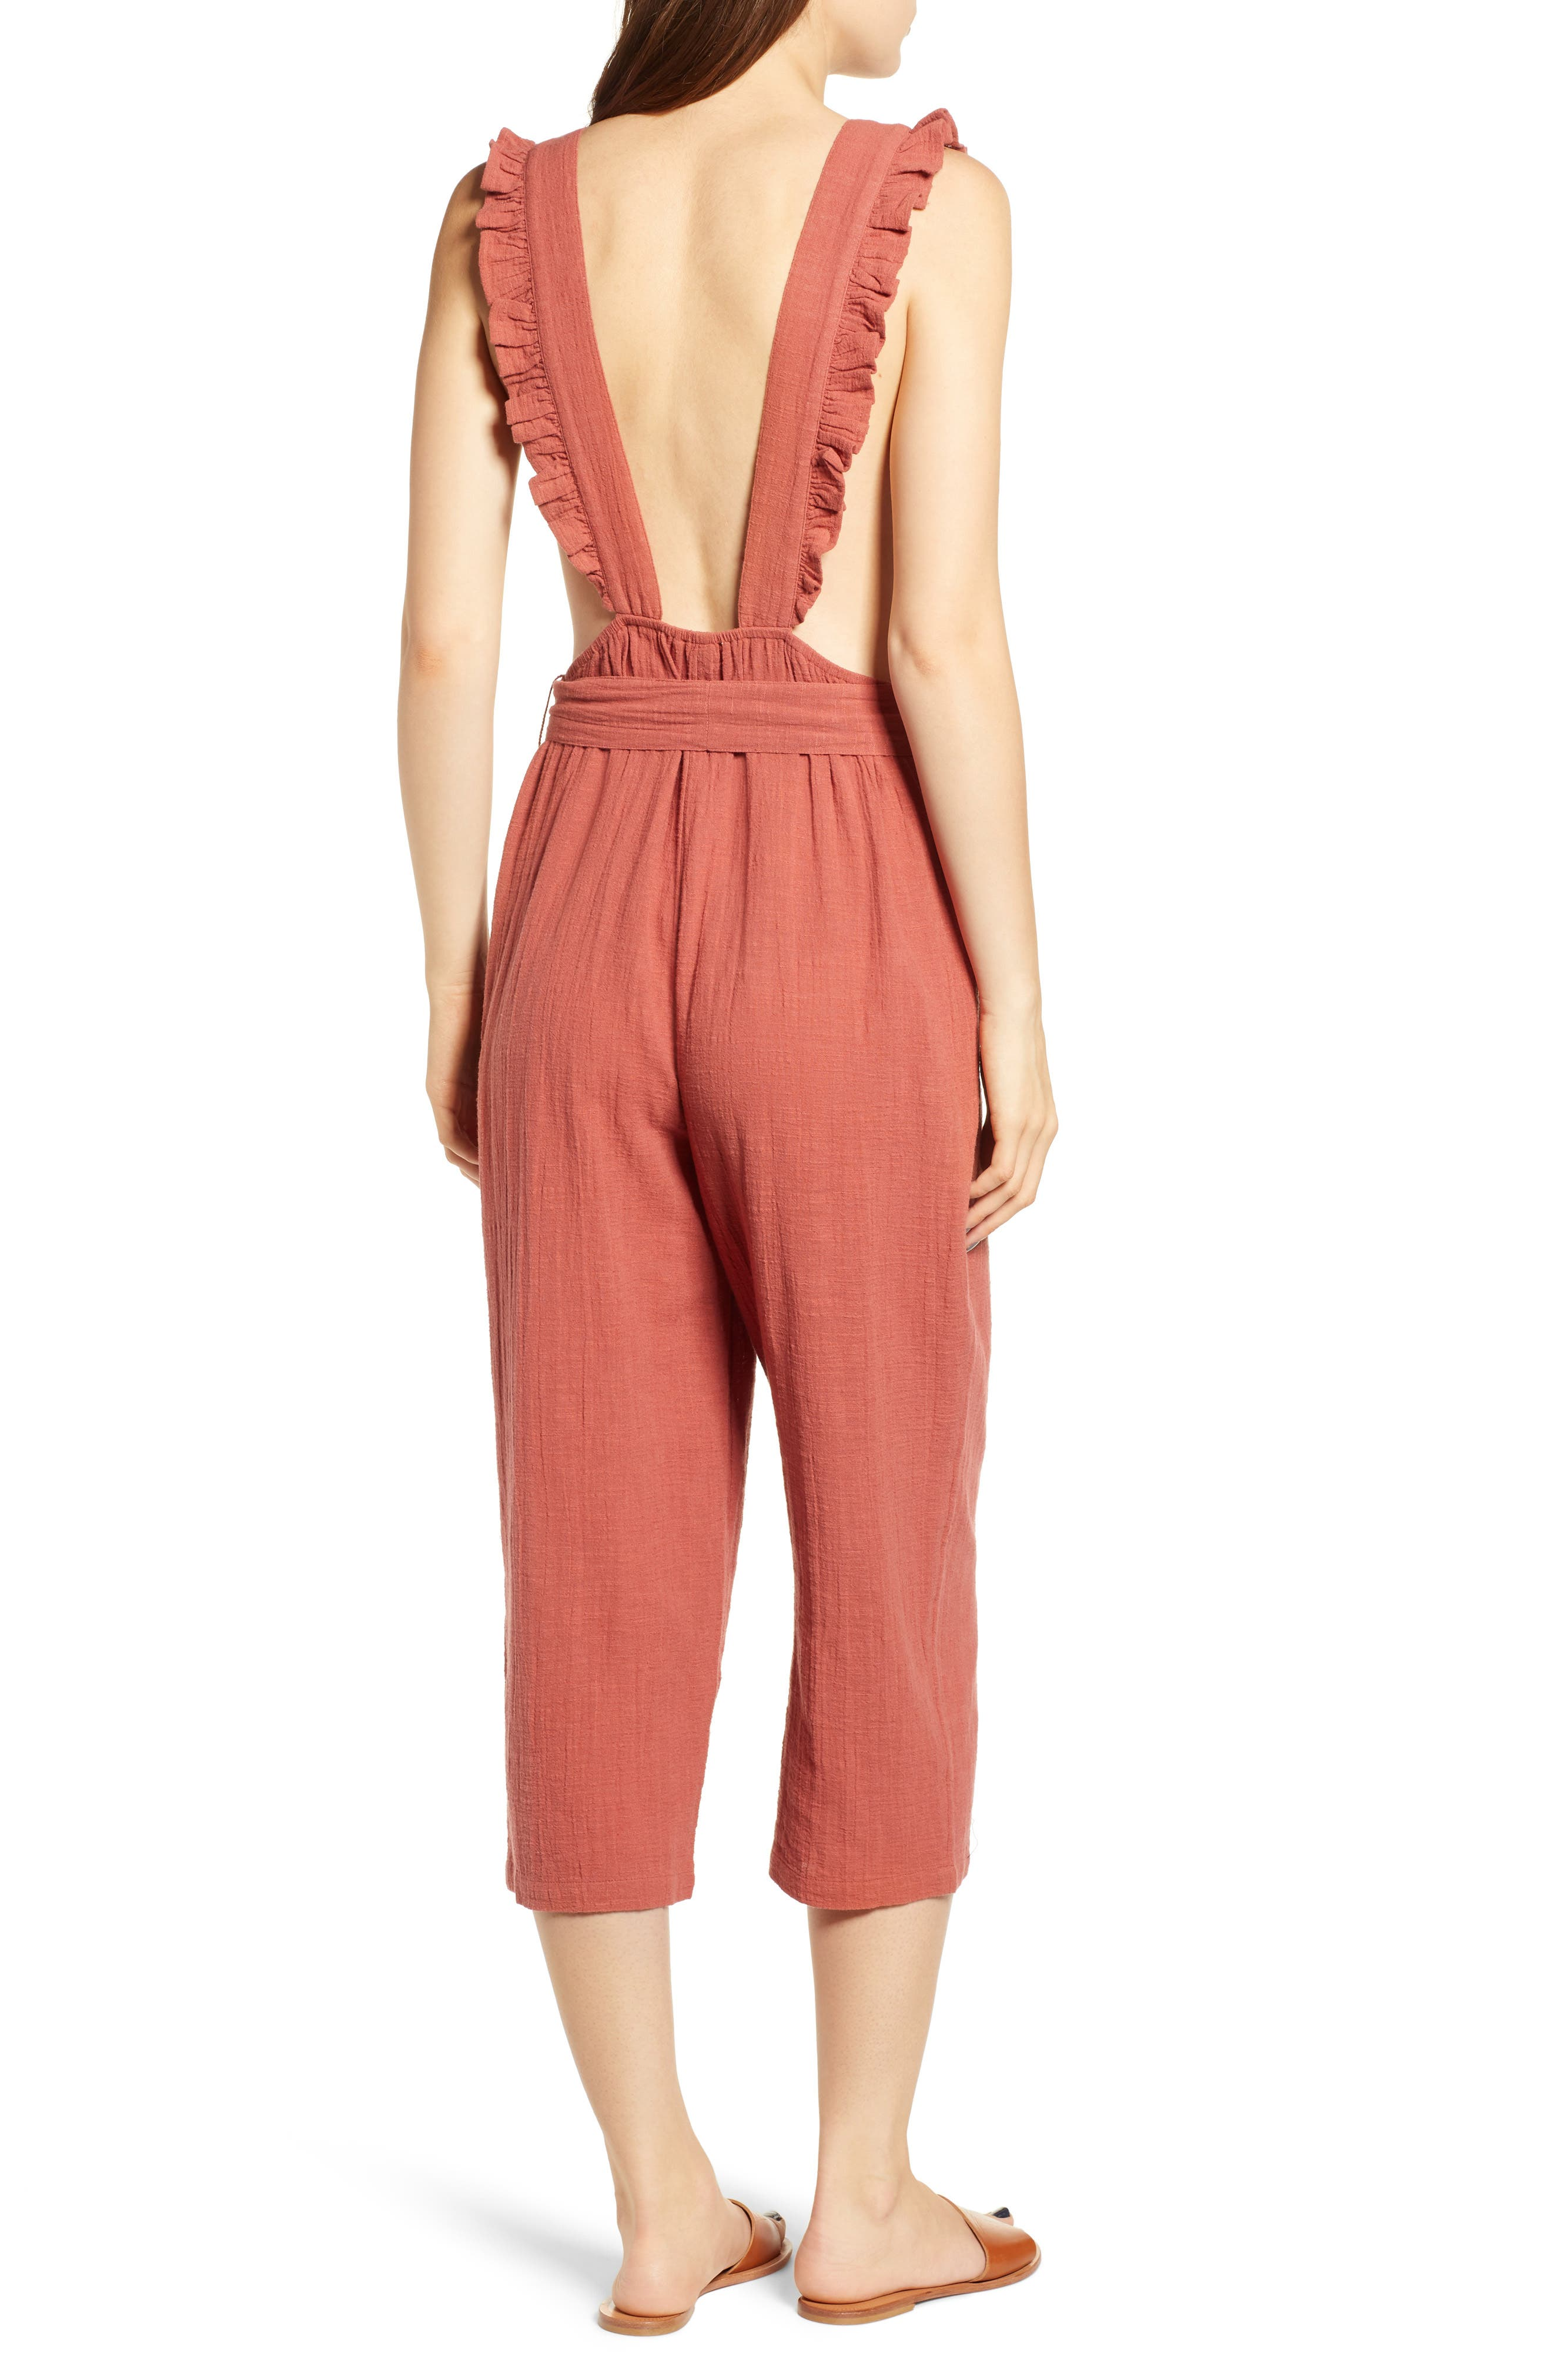 TOPSHOP, Frill Crop Jumpsuit, Alternate thumbnail 2, color, 220